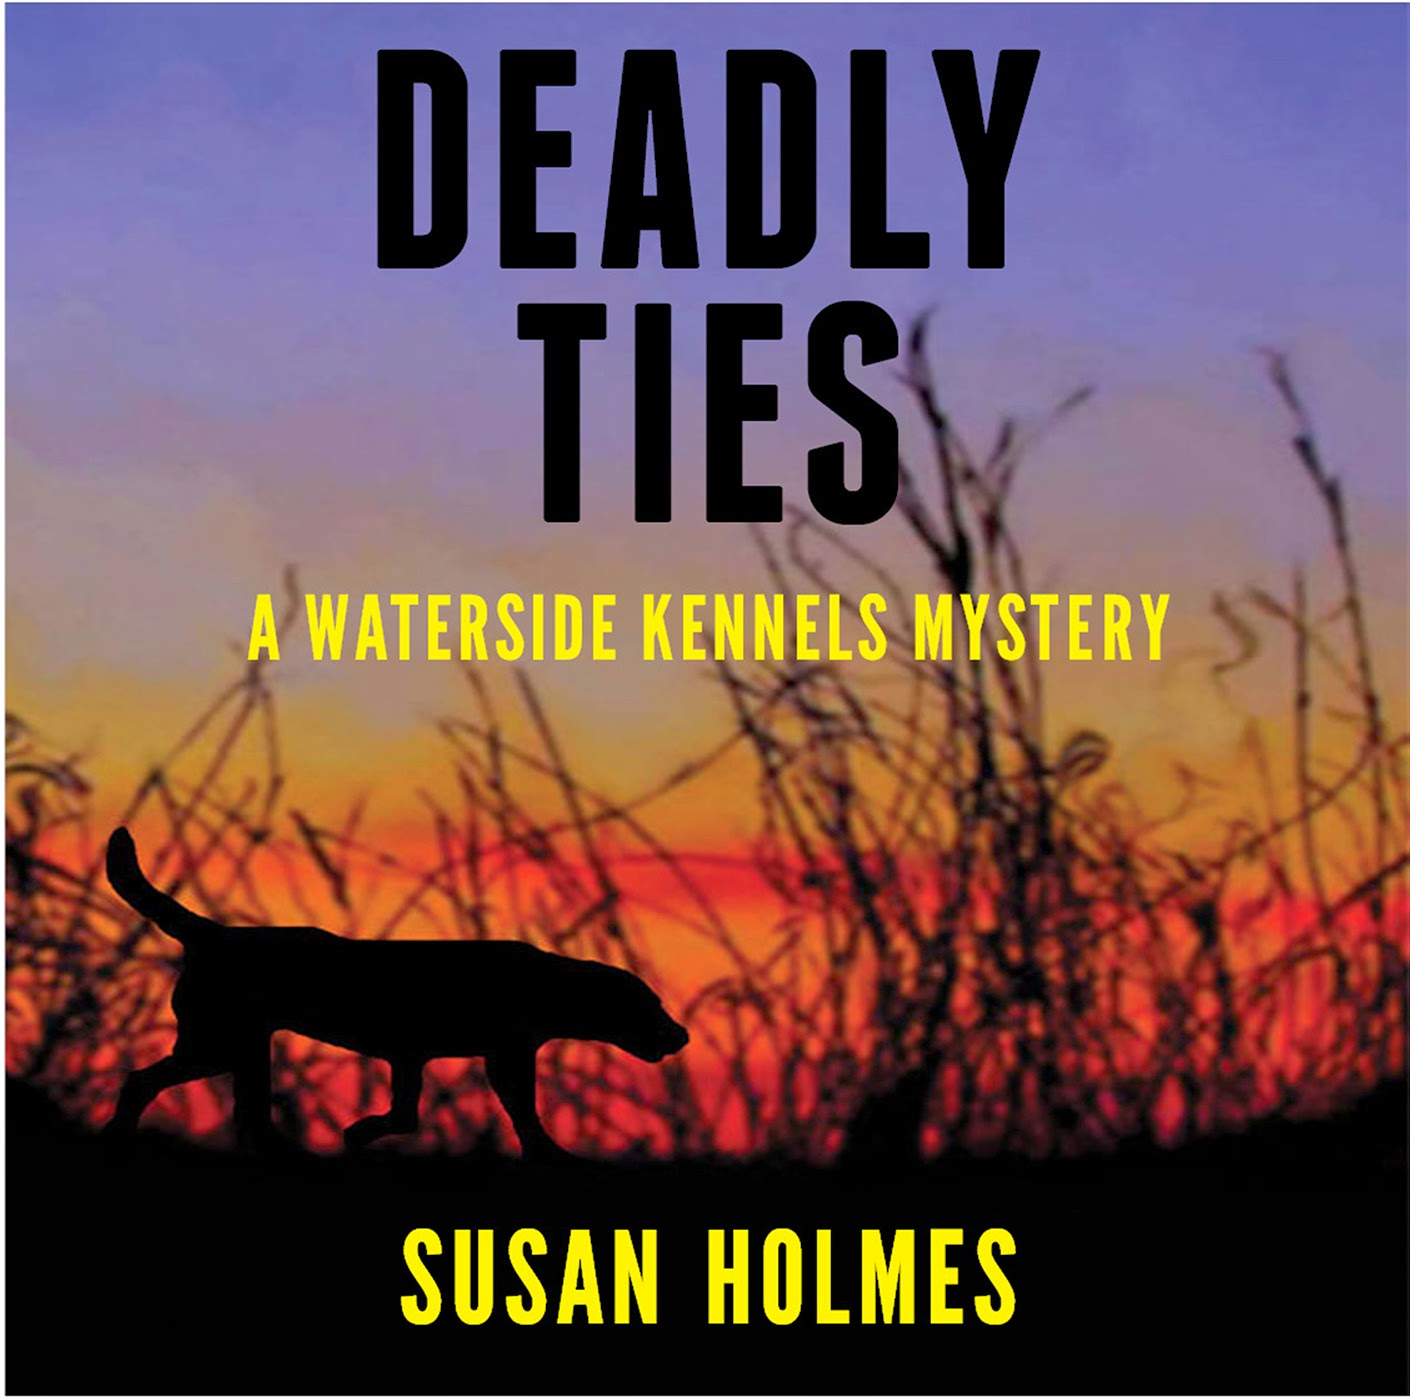 http://www.amazon.com/s/ref=nb_sb_noss_1?url=search-alias%3Dstripbooks&field-keywords=Susan+Holmes